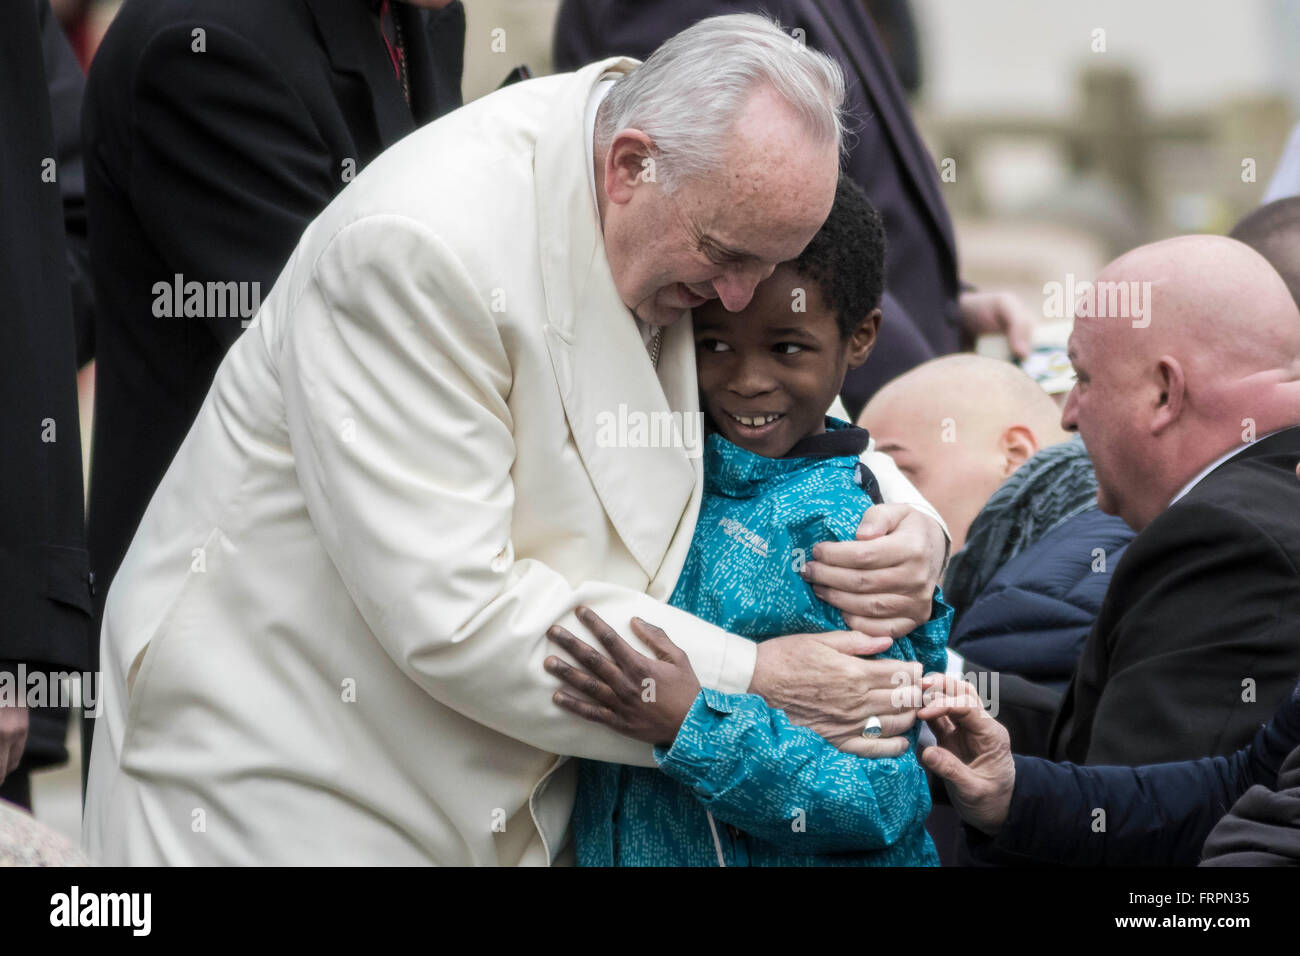 Vatican City, Vatican. 23rd Mar, 2016. Pope Francis hugs a boyduring his Weekly General Audience in St. Peter's - Stock Image